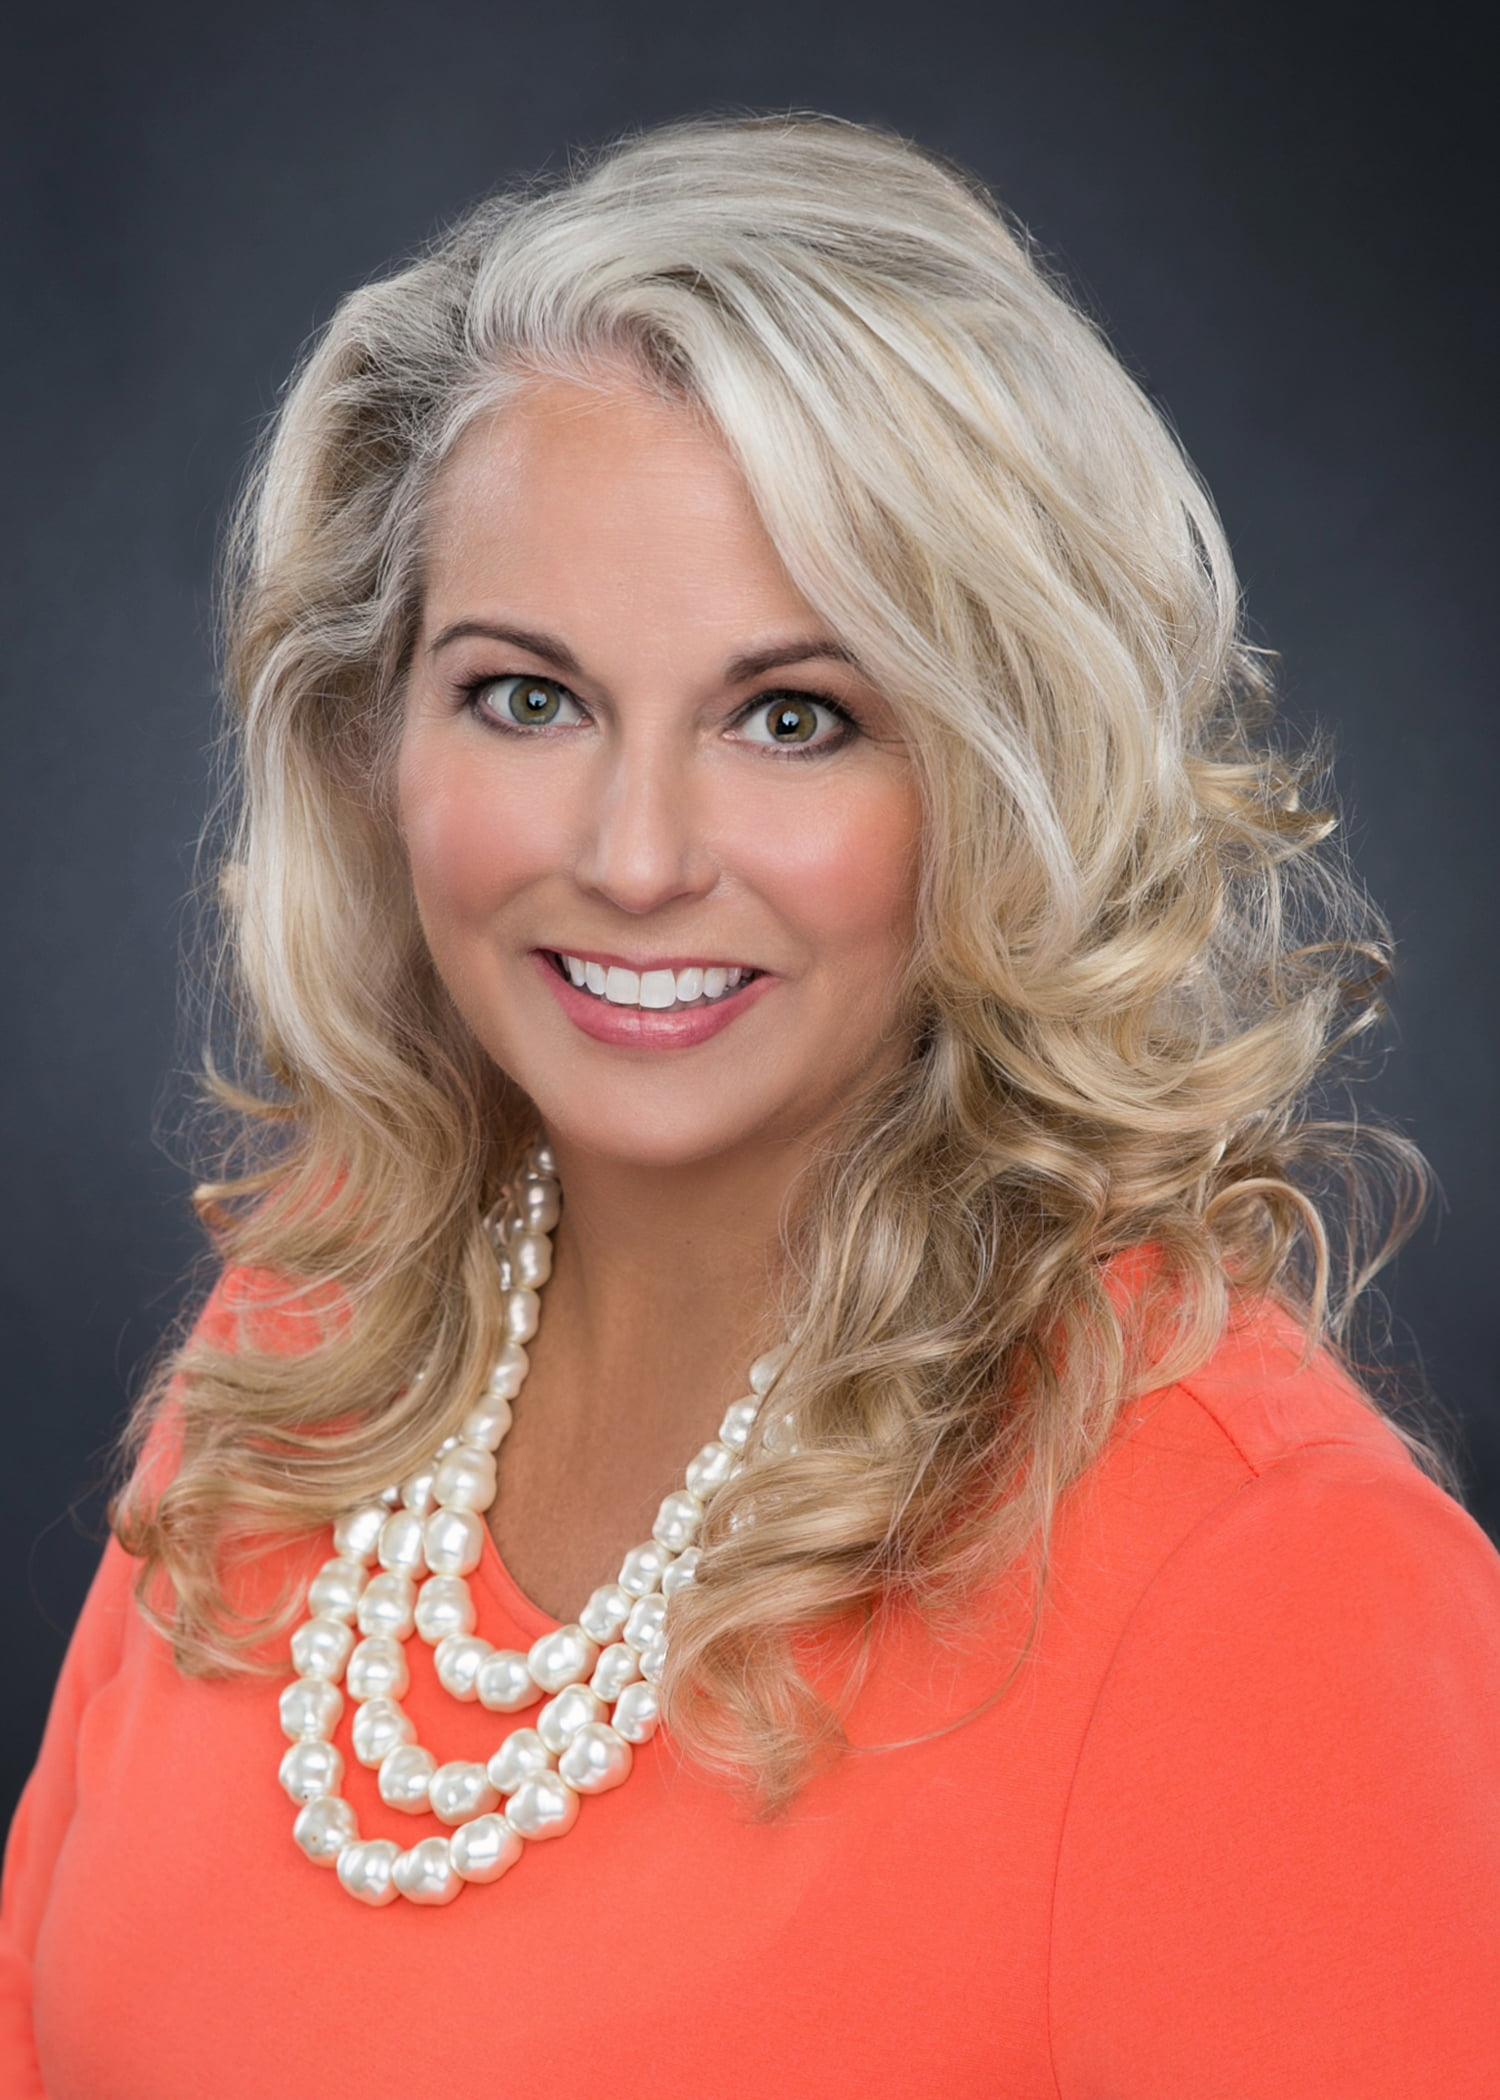 Stephanie Dale Joins the Award-Winning Travel Agency Company, Cruise Planners, as Franchise Owner